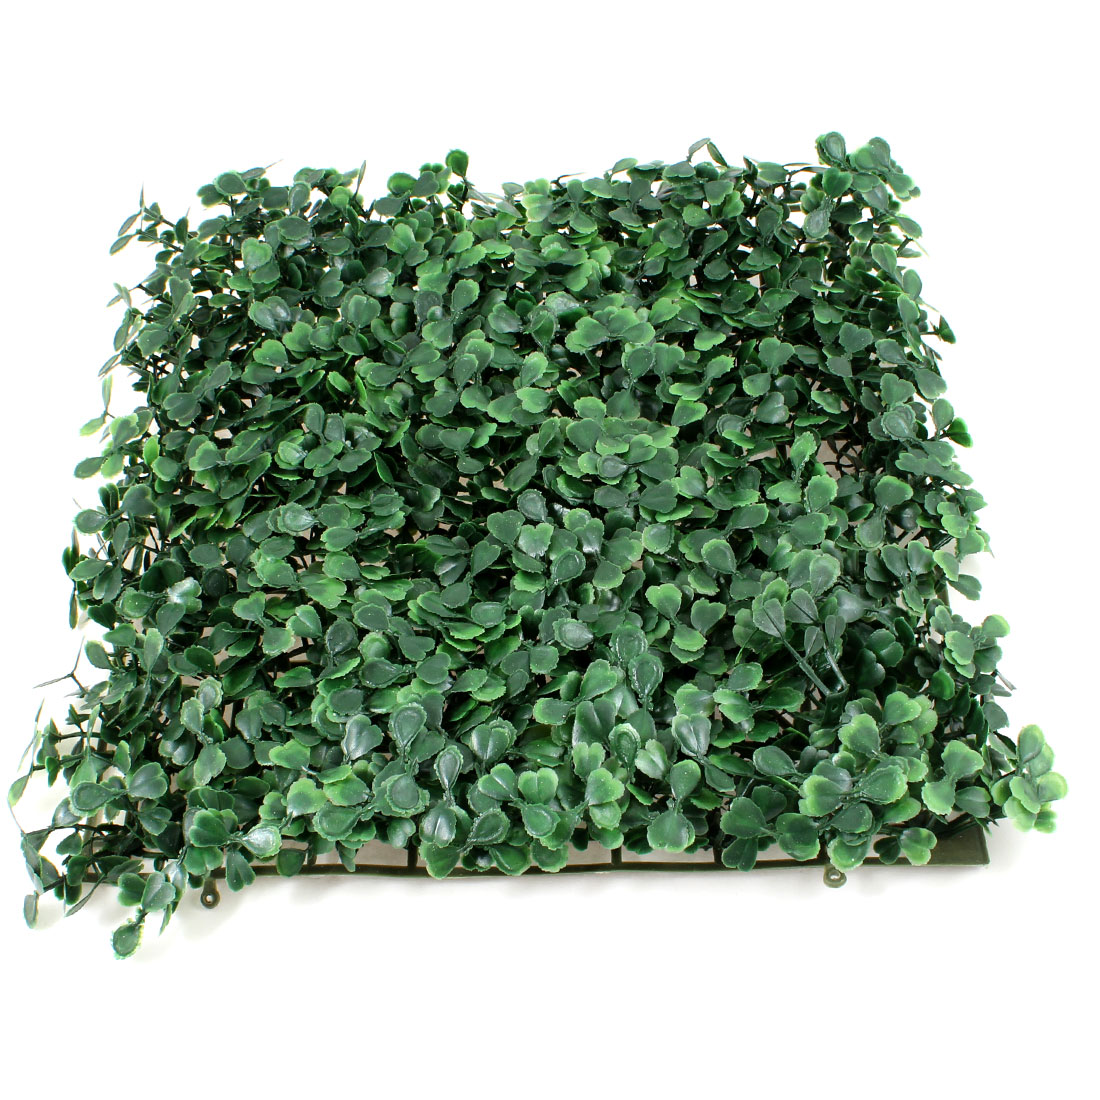 "9.8"" x 9.8"" Aquarium Green Plastic Grass Lawn Mat Turf Ornament"